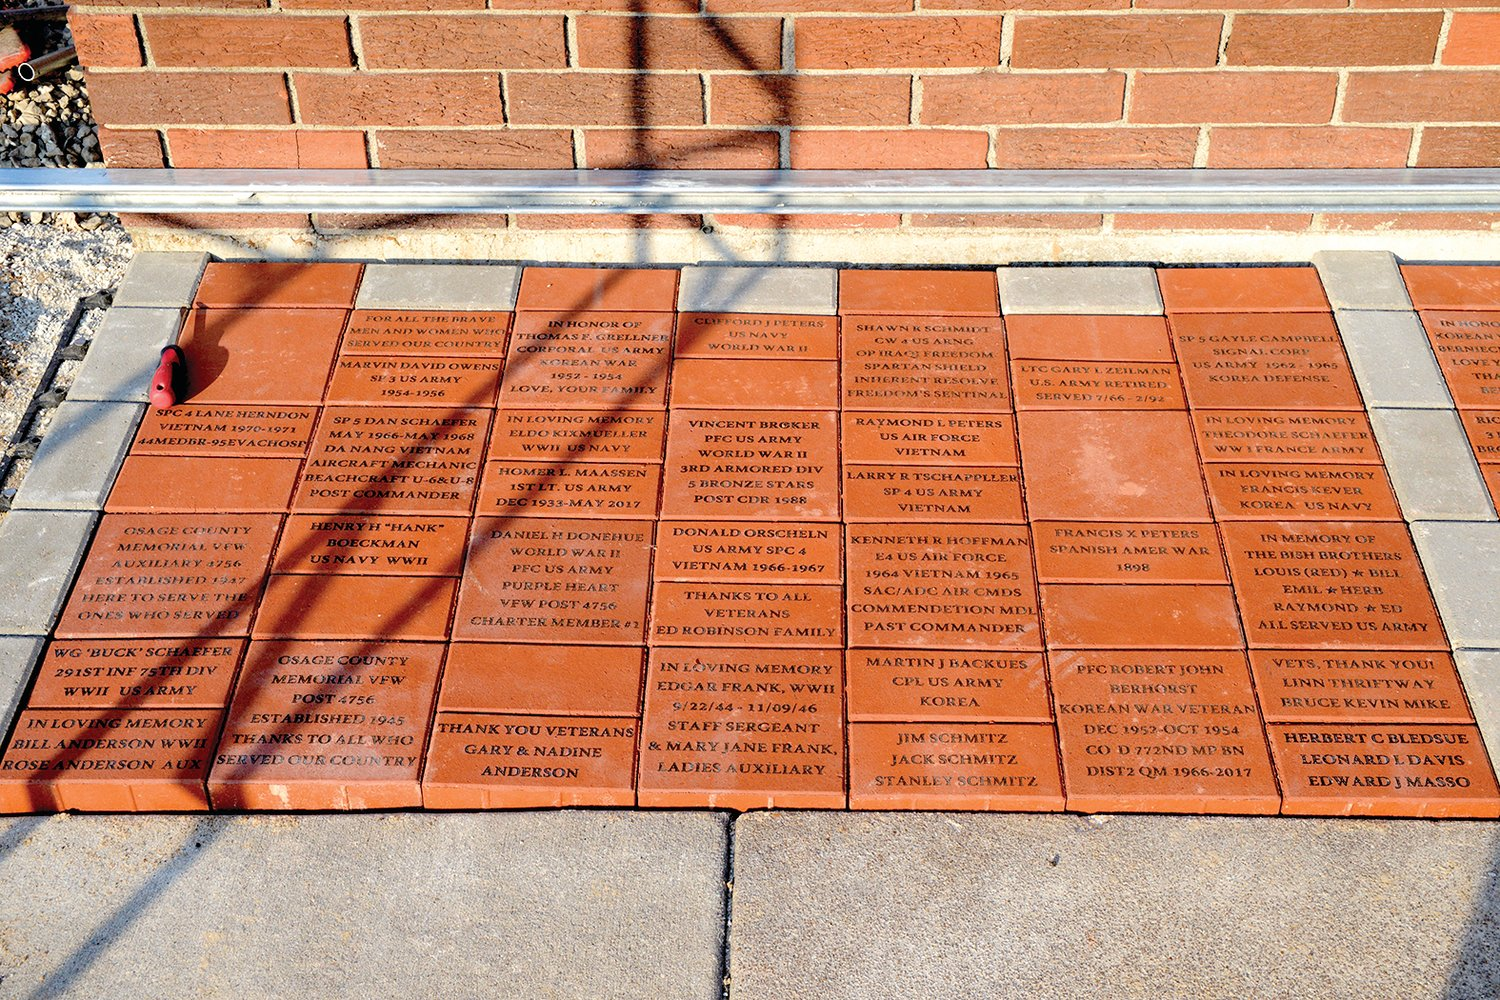 A project launched in June by members of the Veterans of Foreign Wars Post 4756 in Linn came to fruition last weekend with the laying of 102 engraved and some blank bricks covering 15 feet along the east wall o